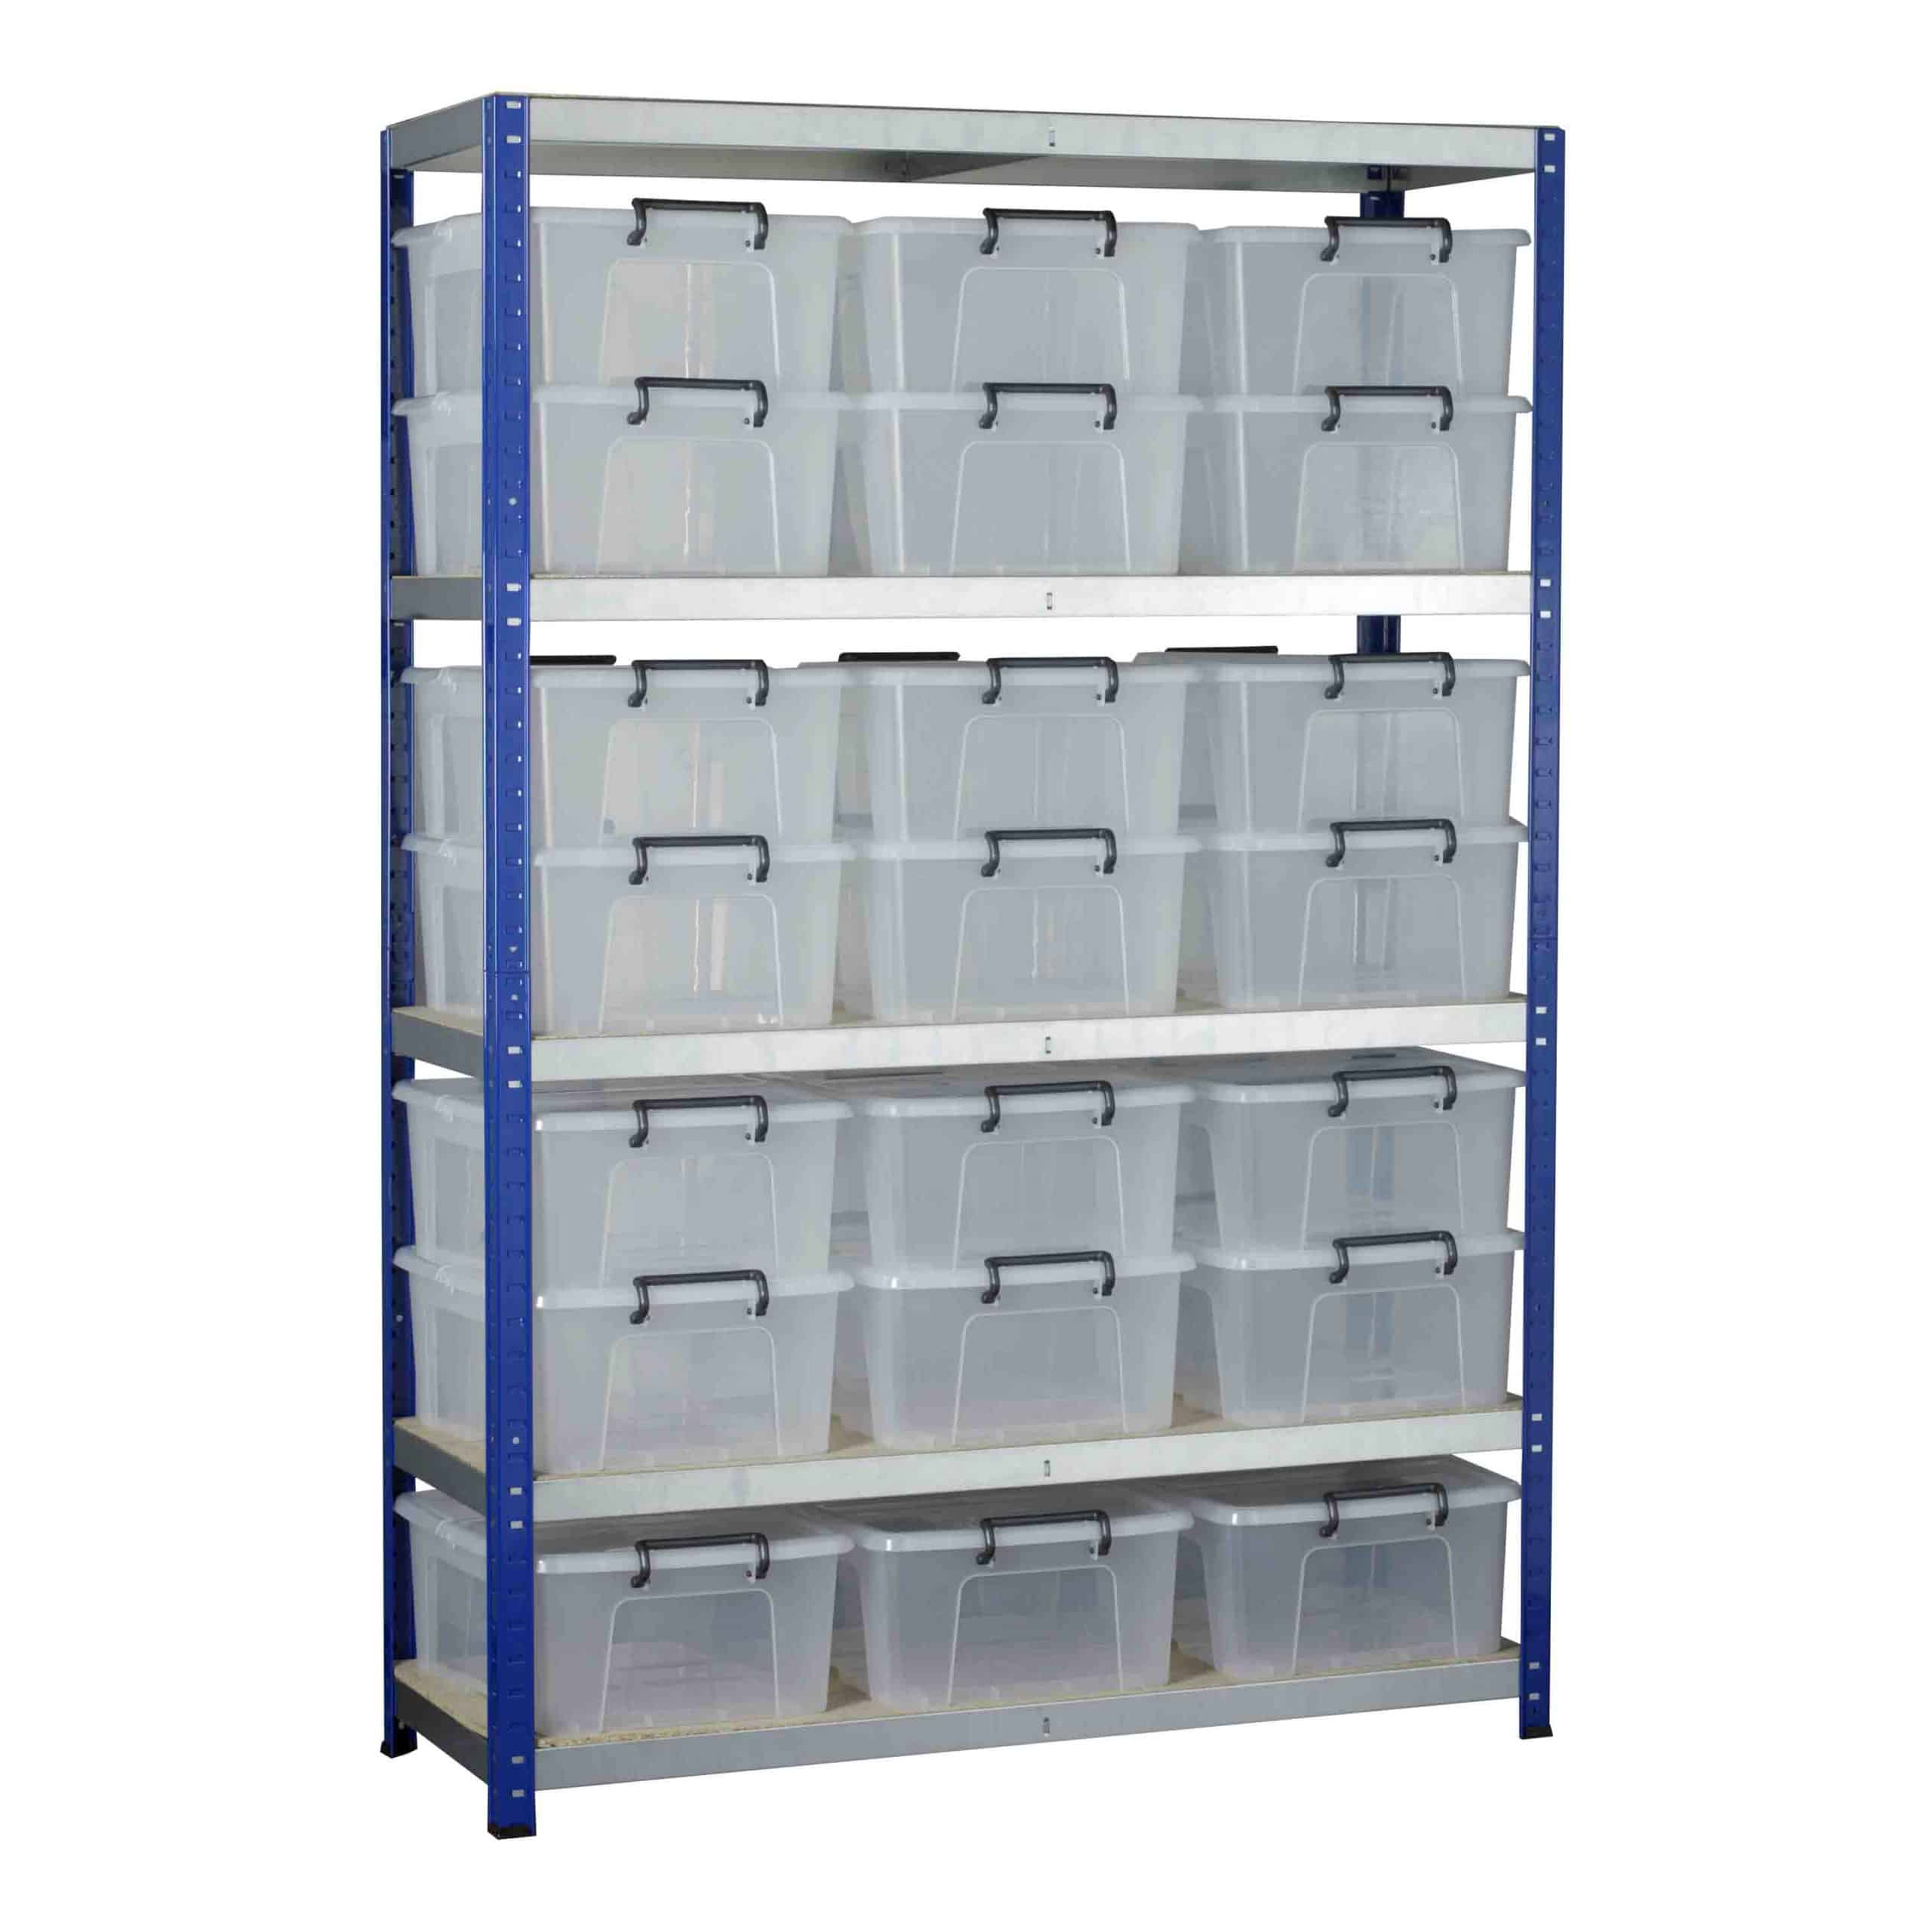 Ecorax Shelving with 21 Storemaster Containers